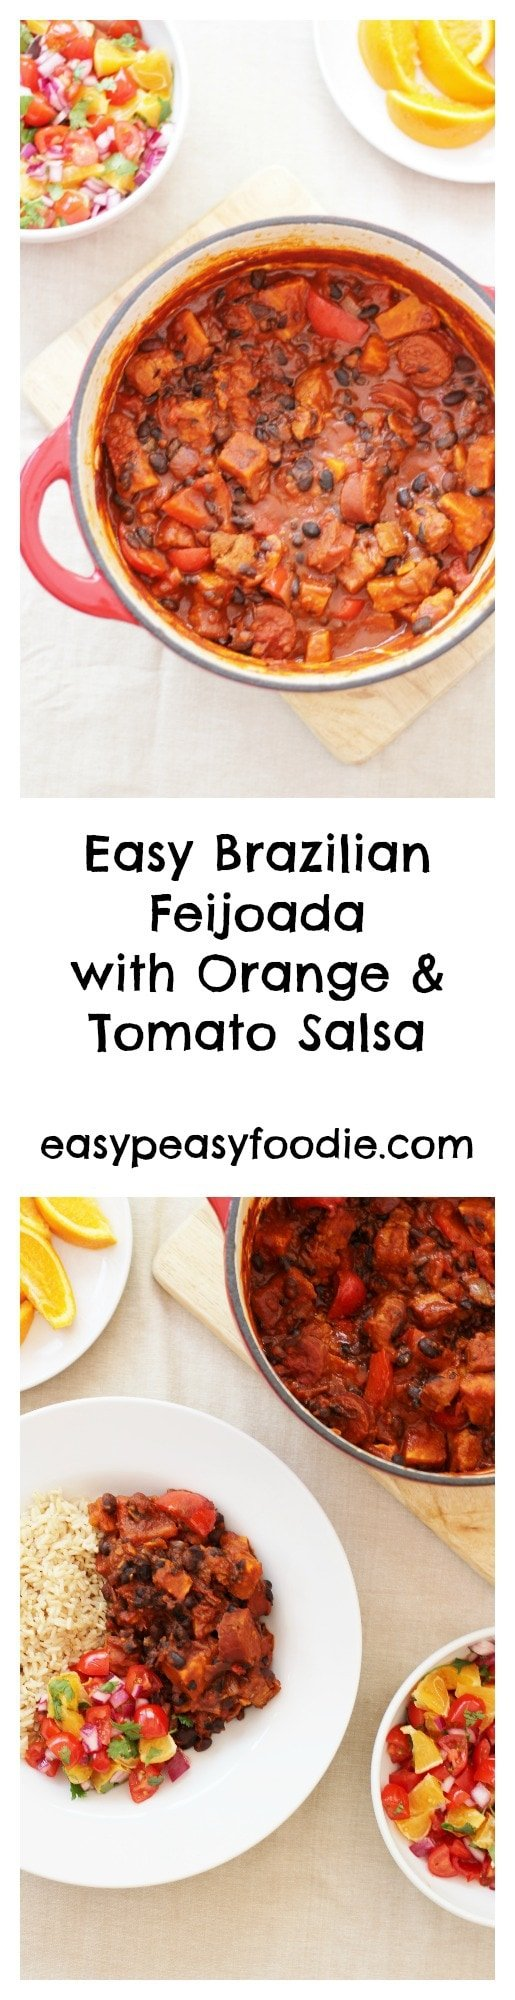 Easy Brazilian Feijoada with Orange and Tomato Salsa - pinnable image with text for Pinterest